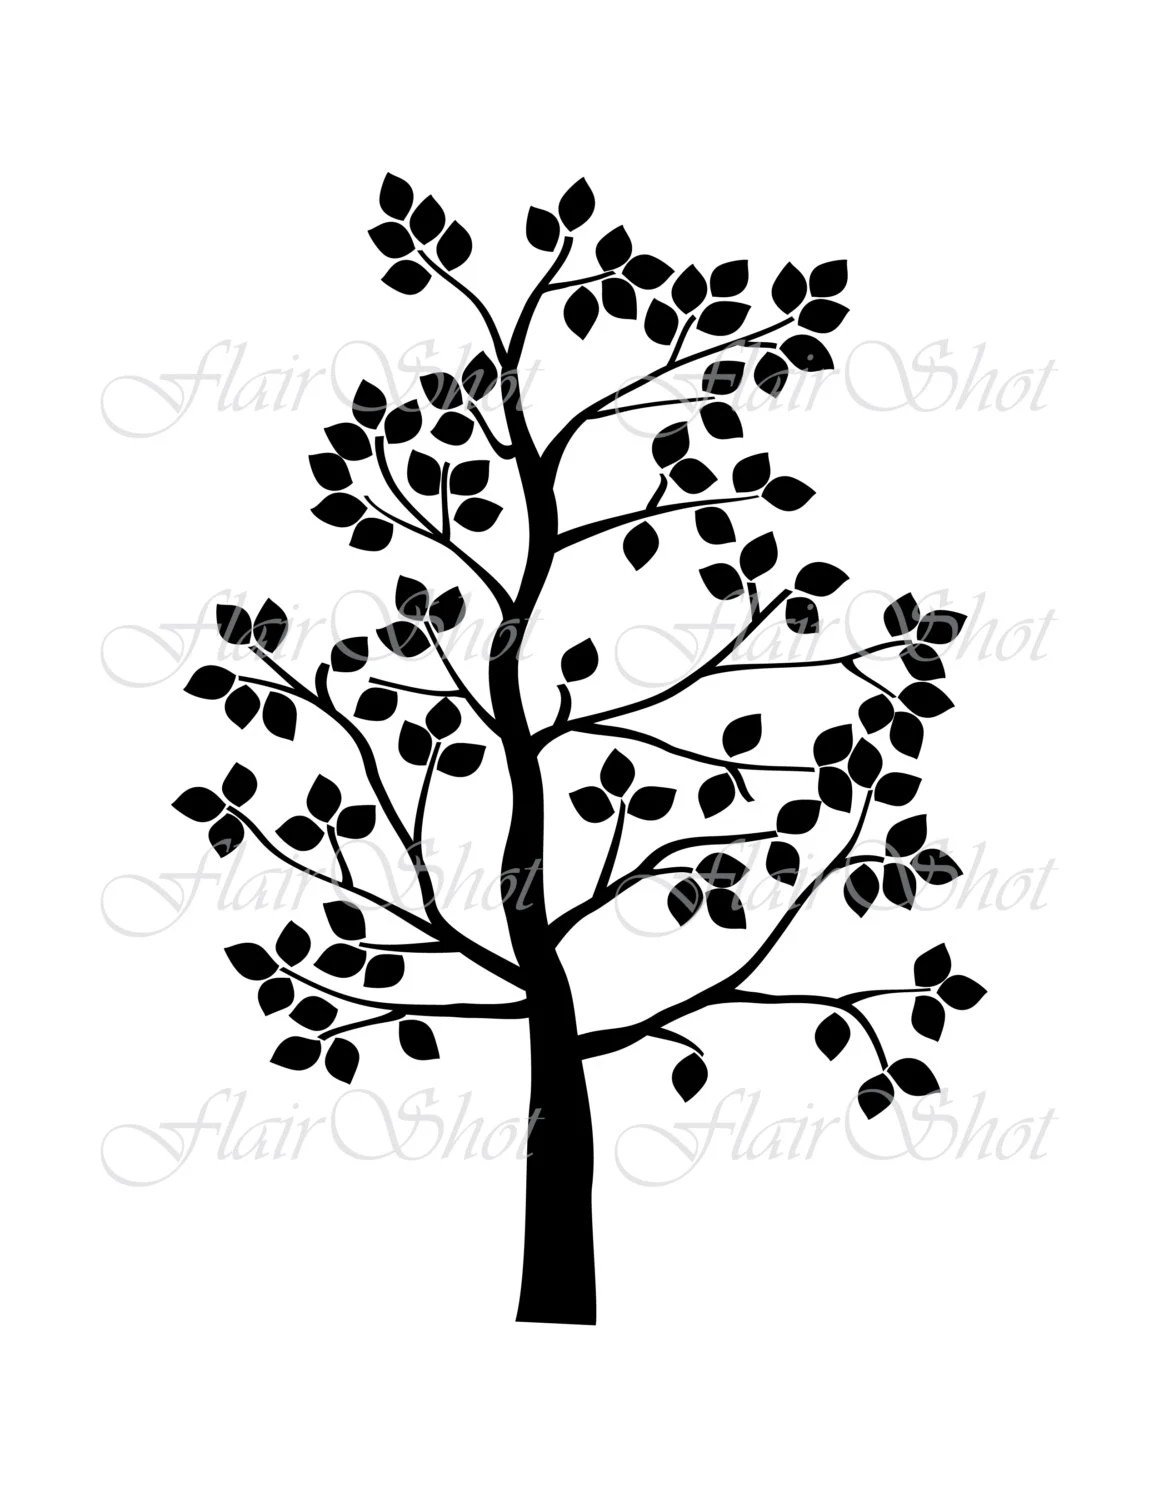 Digital Tree Clip Art, Family Tree Clipart, Silhouette